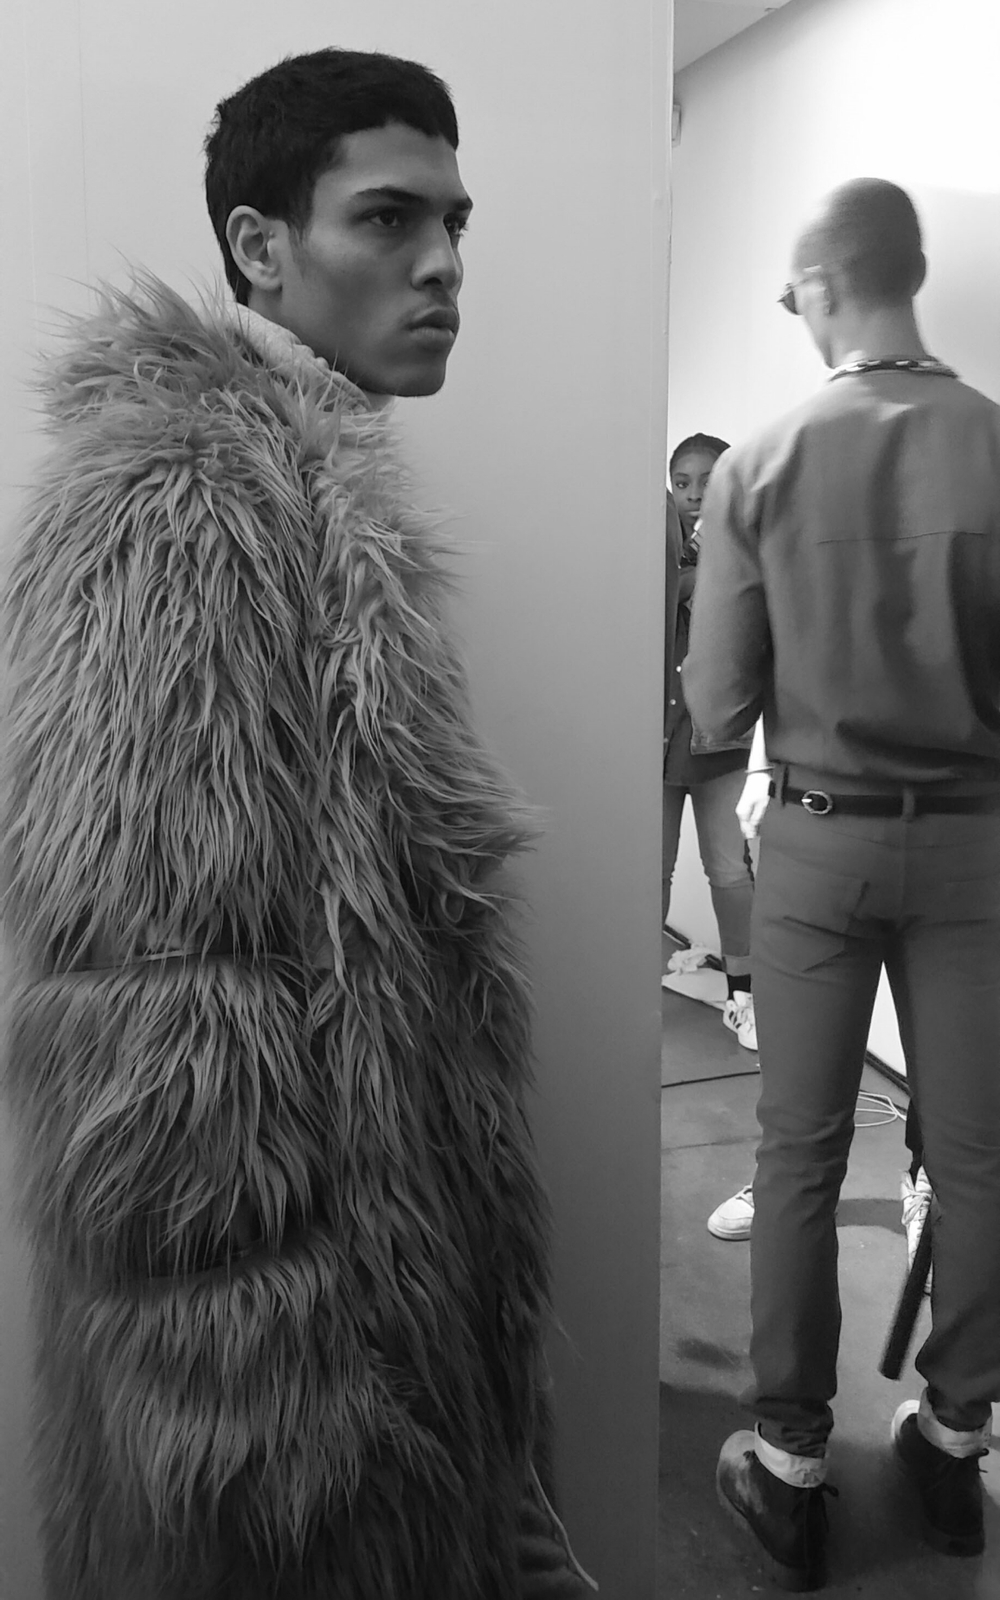 Backstage at the Pyer Moss AW16 show (credit: Kali Brown)